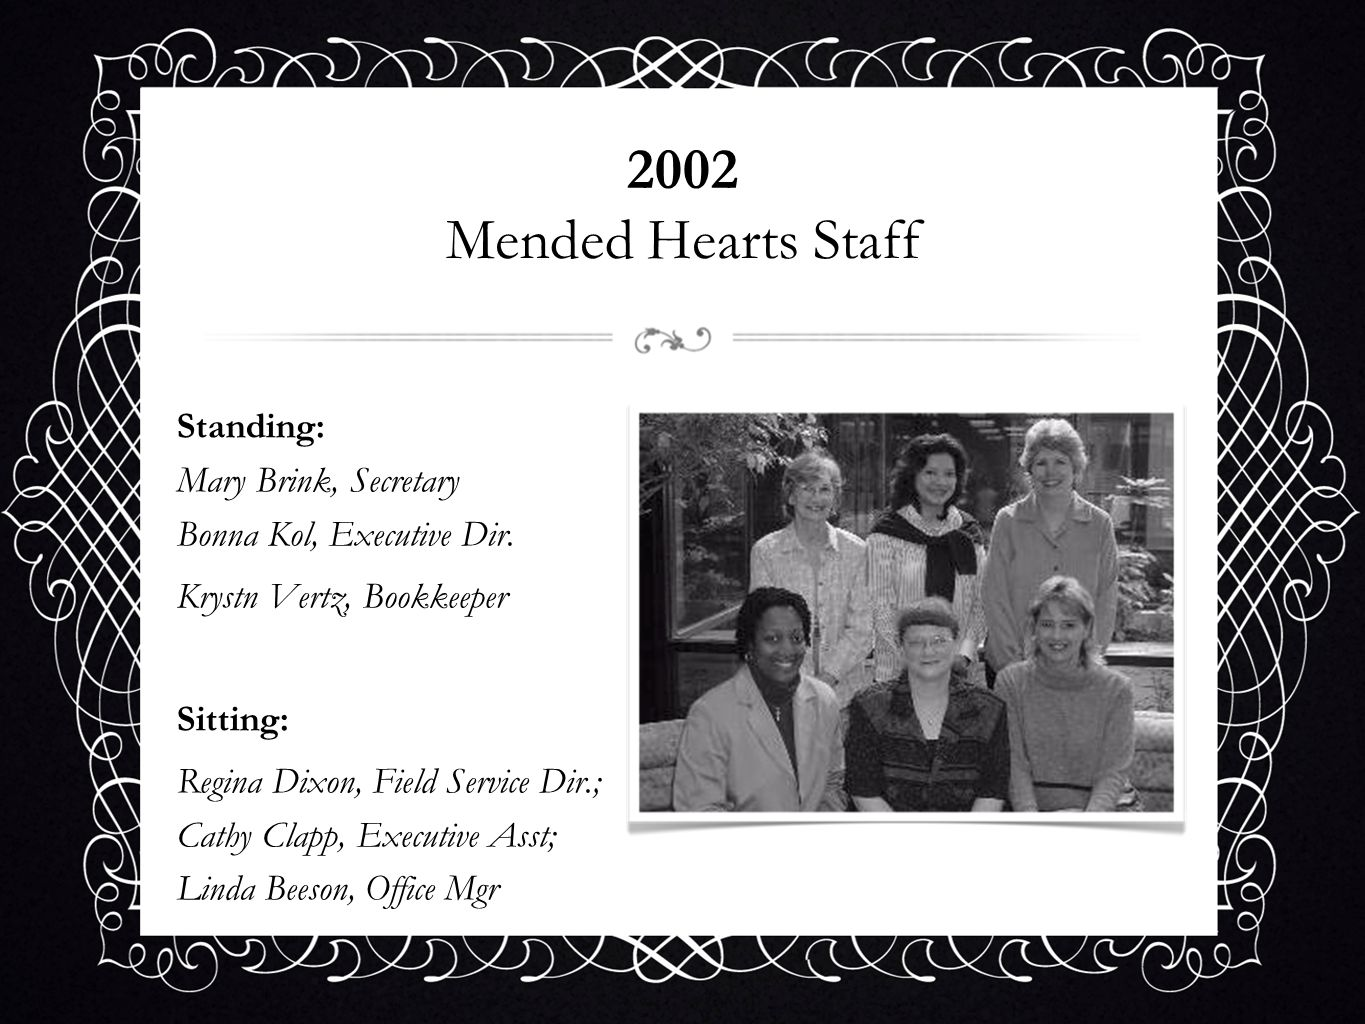 2002 Mended Hearts Staff Standing: Mary Brink, Secretary Bonna Kol, Executive Dir. Krystn Vertz, Bookkeeper.